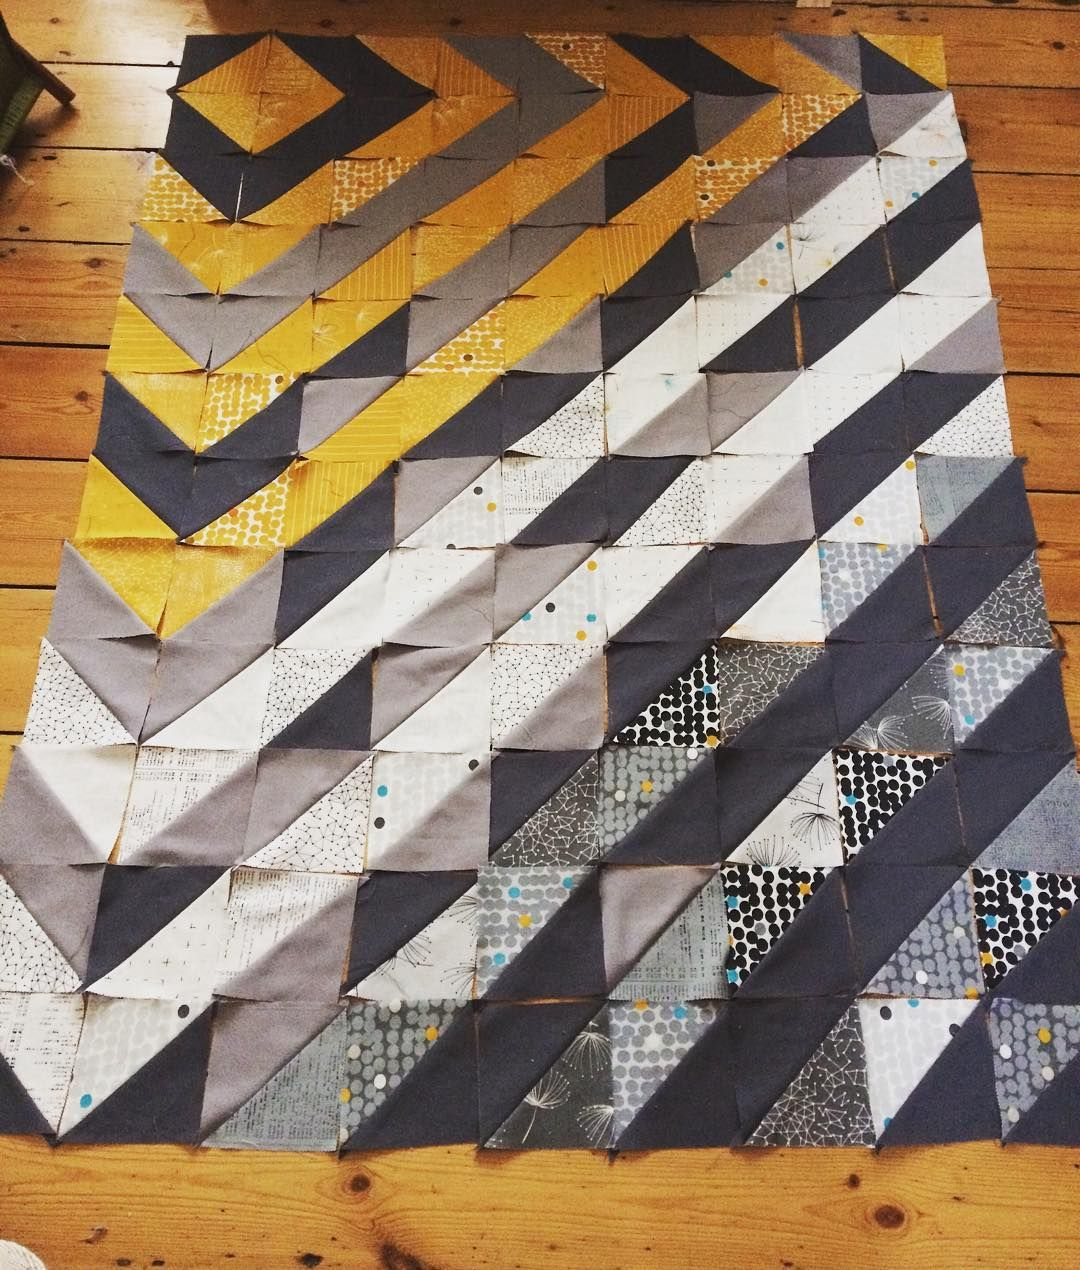 Finished Quilt 60 x 76 Braque Quilt Pattern /Modern Quilt Inspired by Cubist Painter Georges Braque